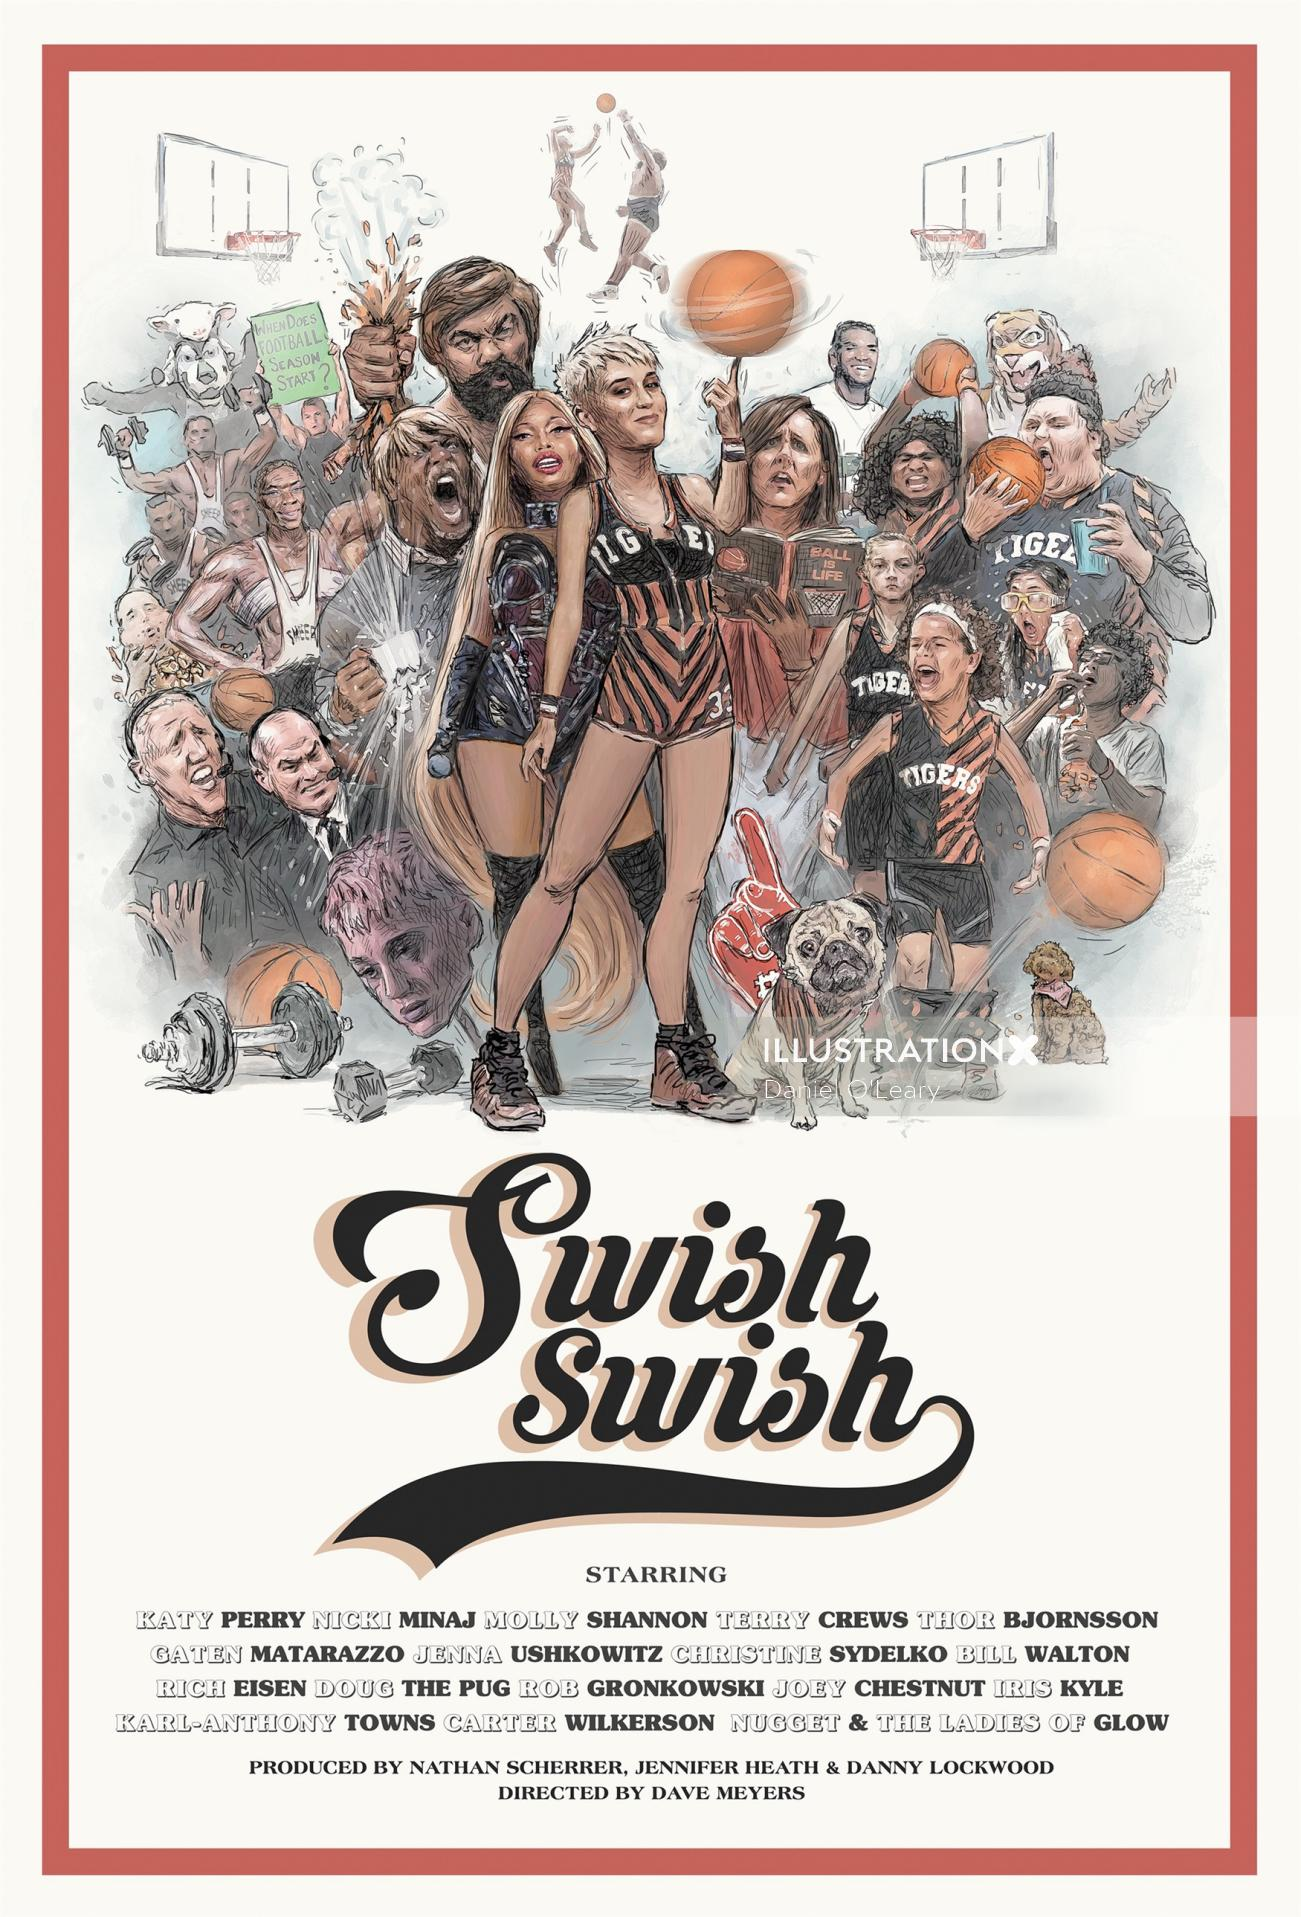 Swish swish Katy Perry poster